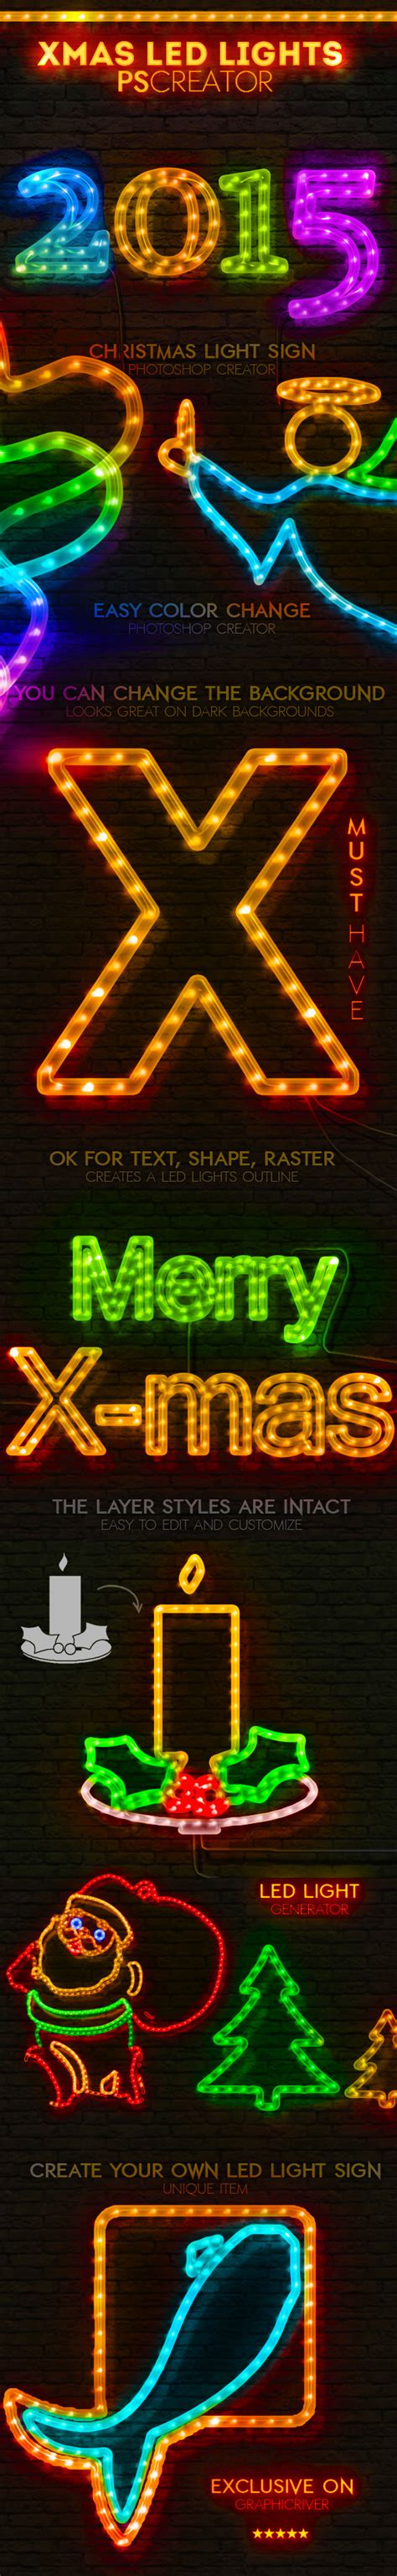 free download christmas light action for photoshop graphicriver neon light sign photoshop actions 187 dondrup